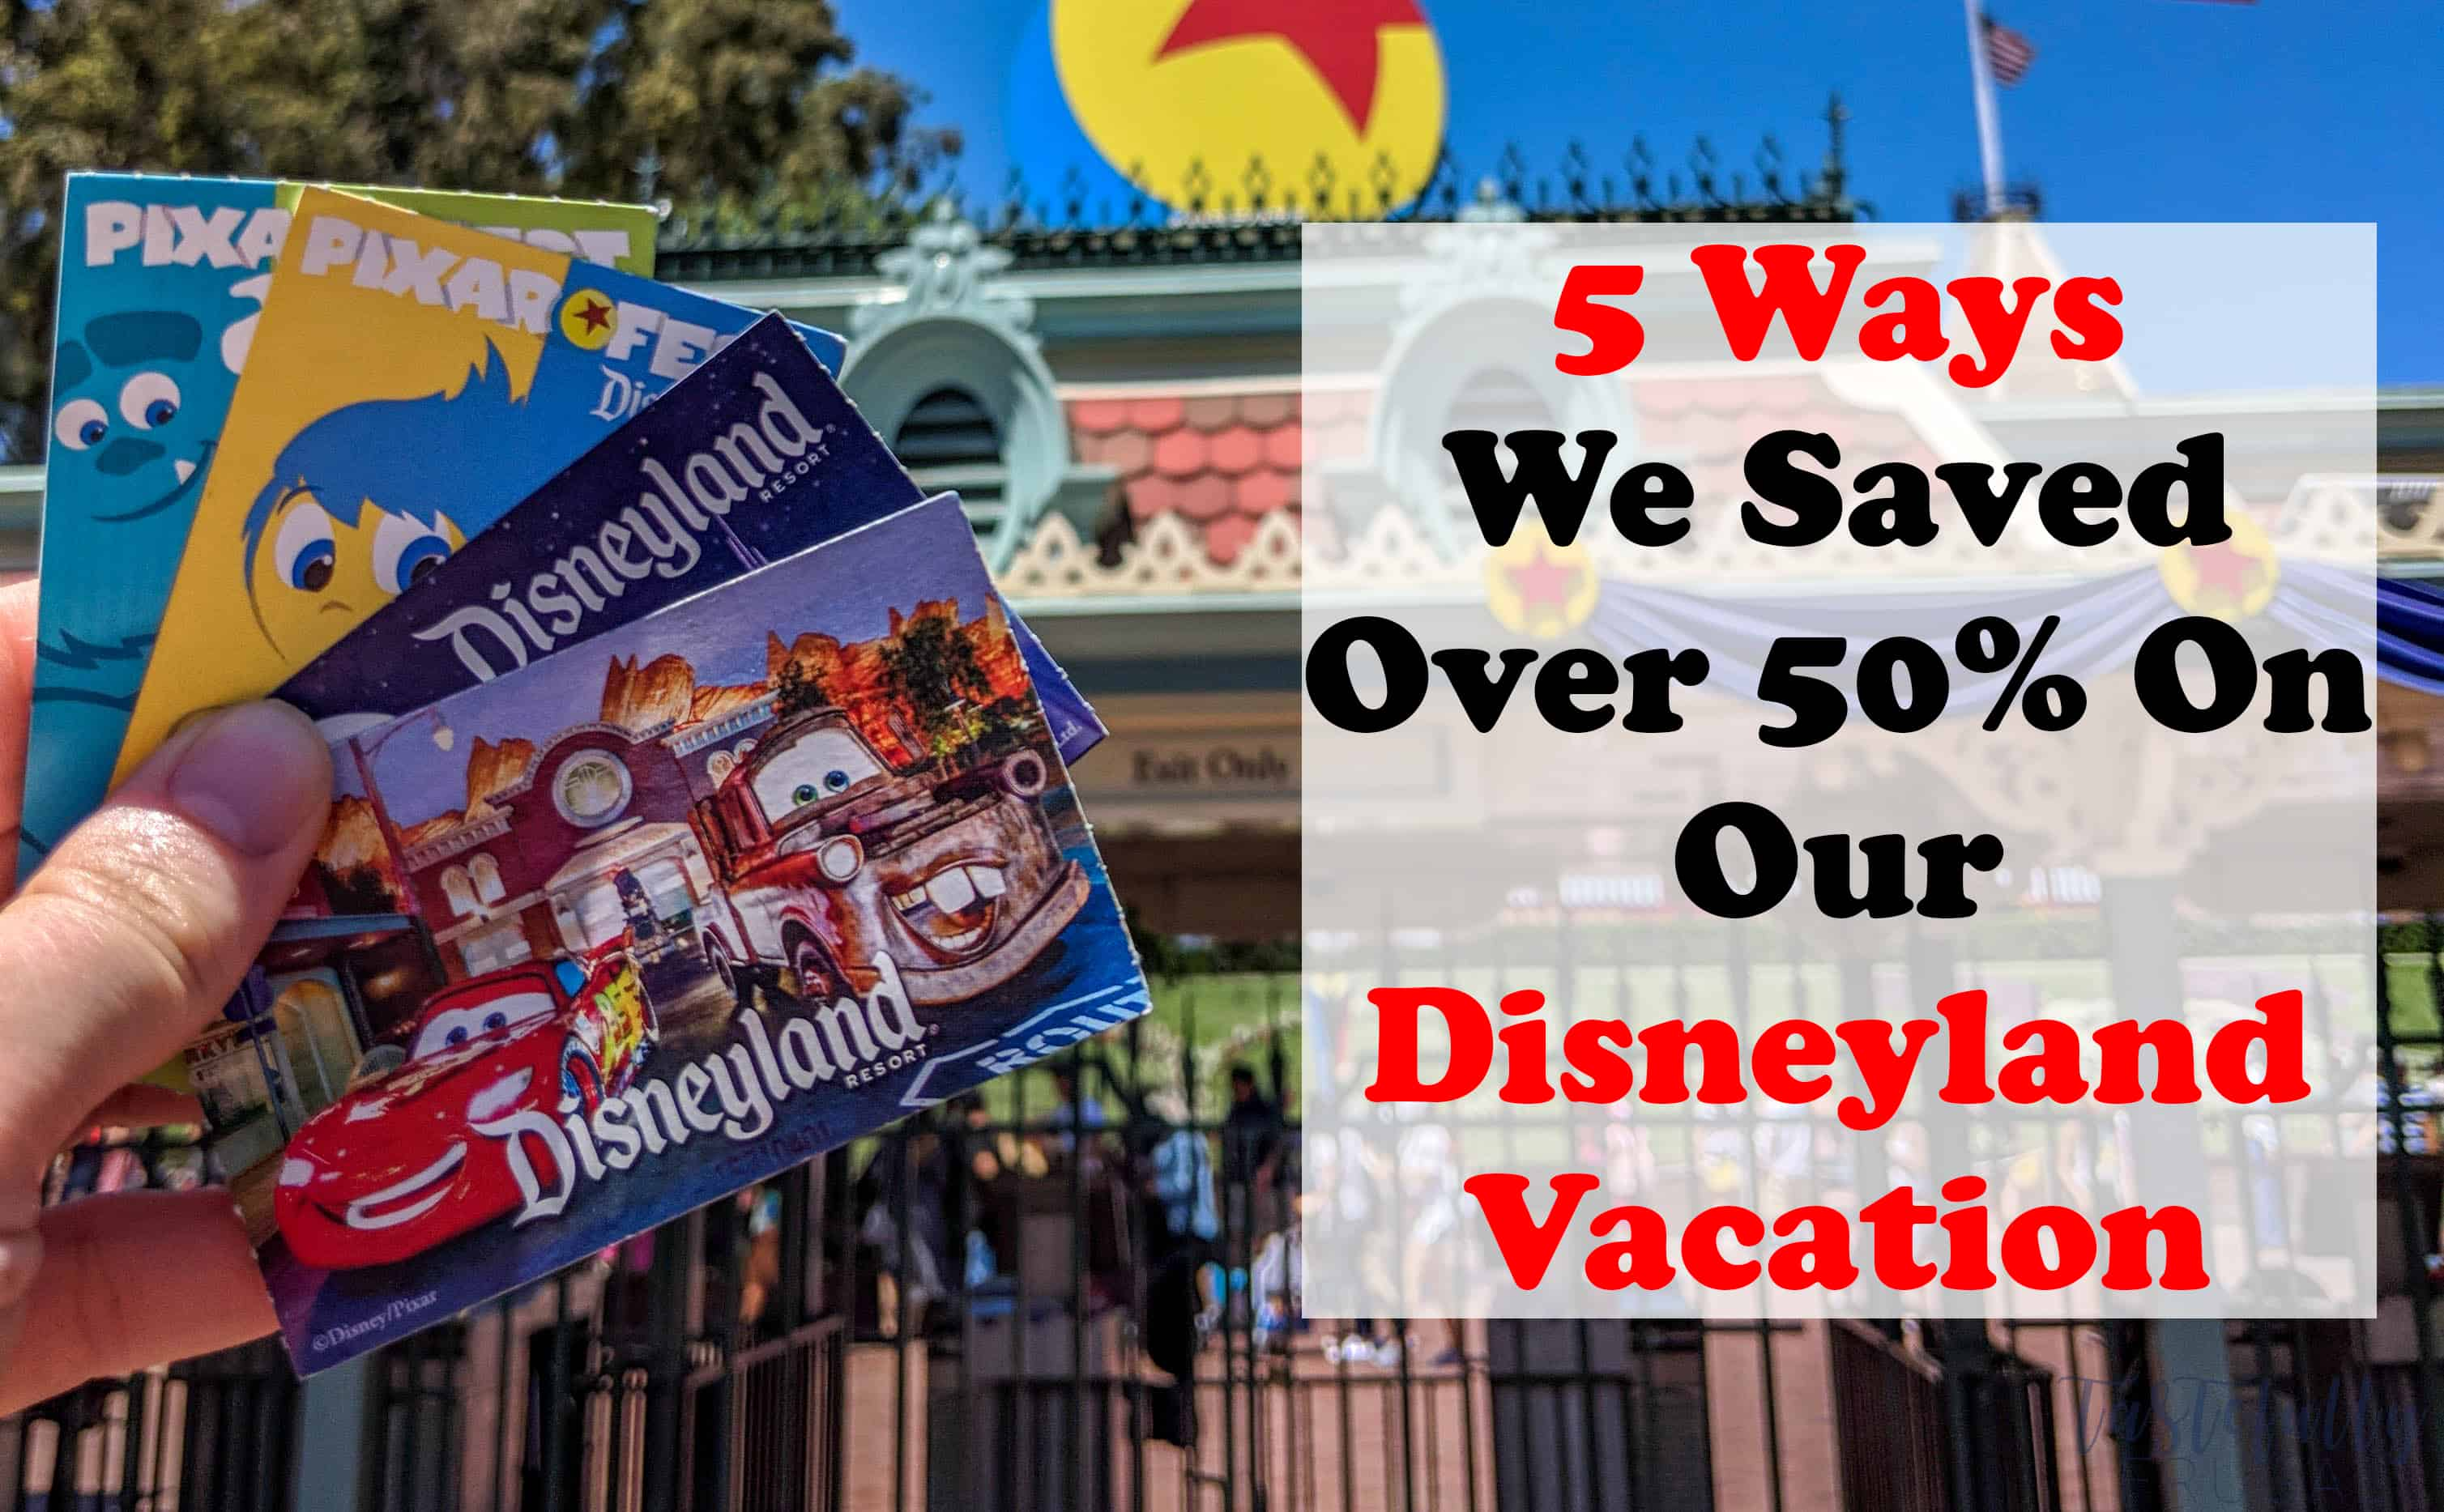 5 Ways We Saved 50% On Our Disneyland Vacation